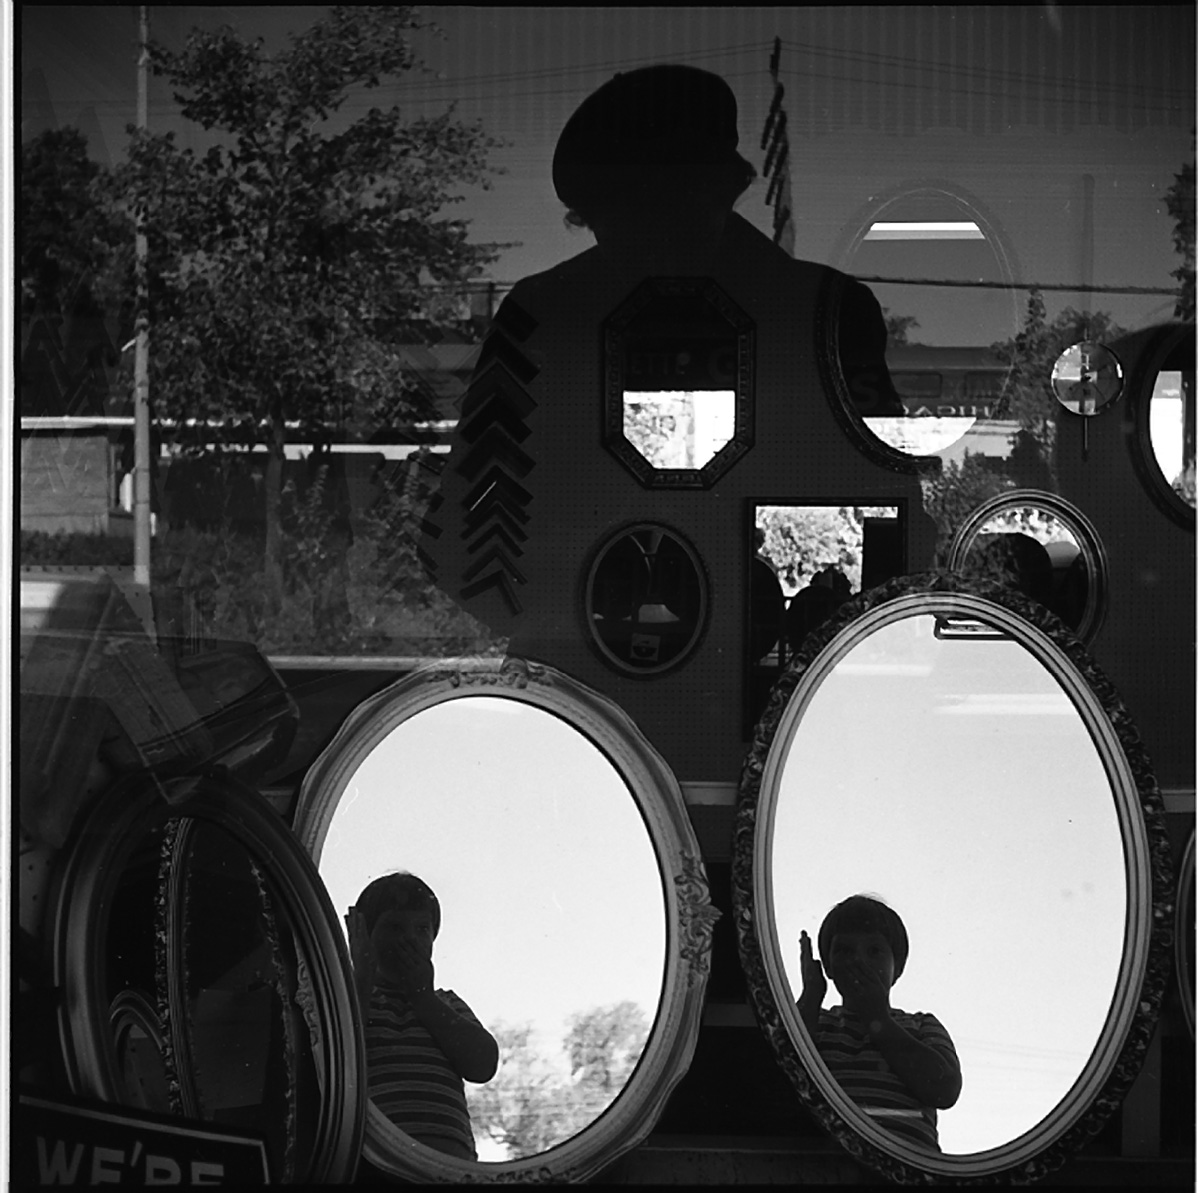 Vivian Maier, Self-portrait, Storefront Window Reflection, North Suburbs, Chicago, 1968